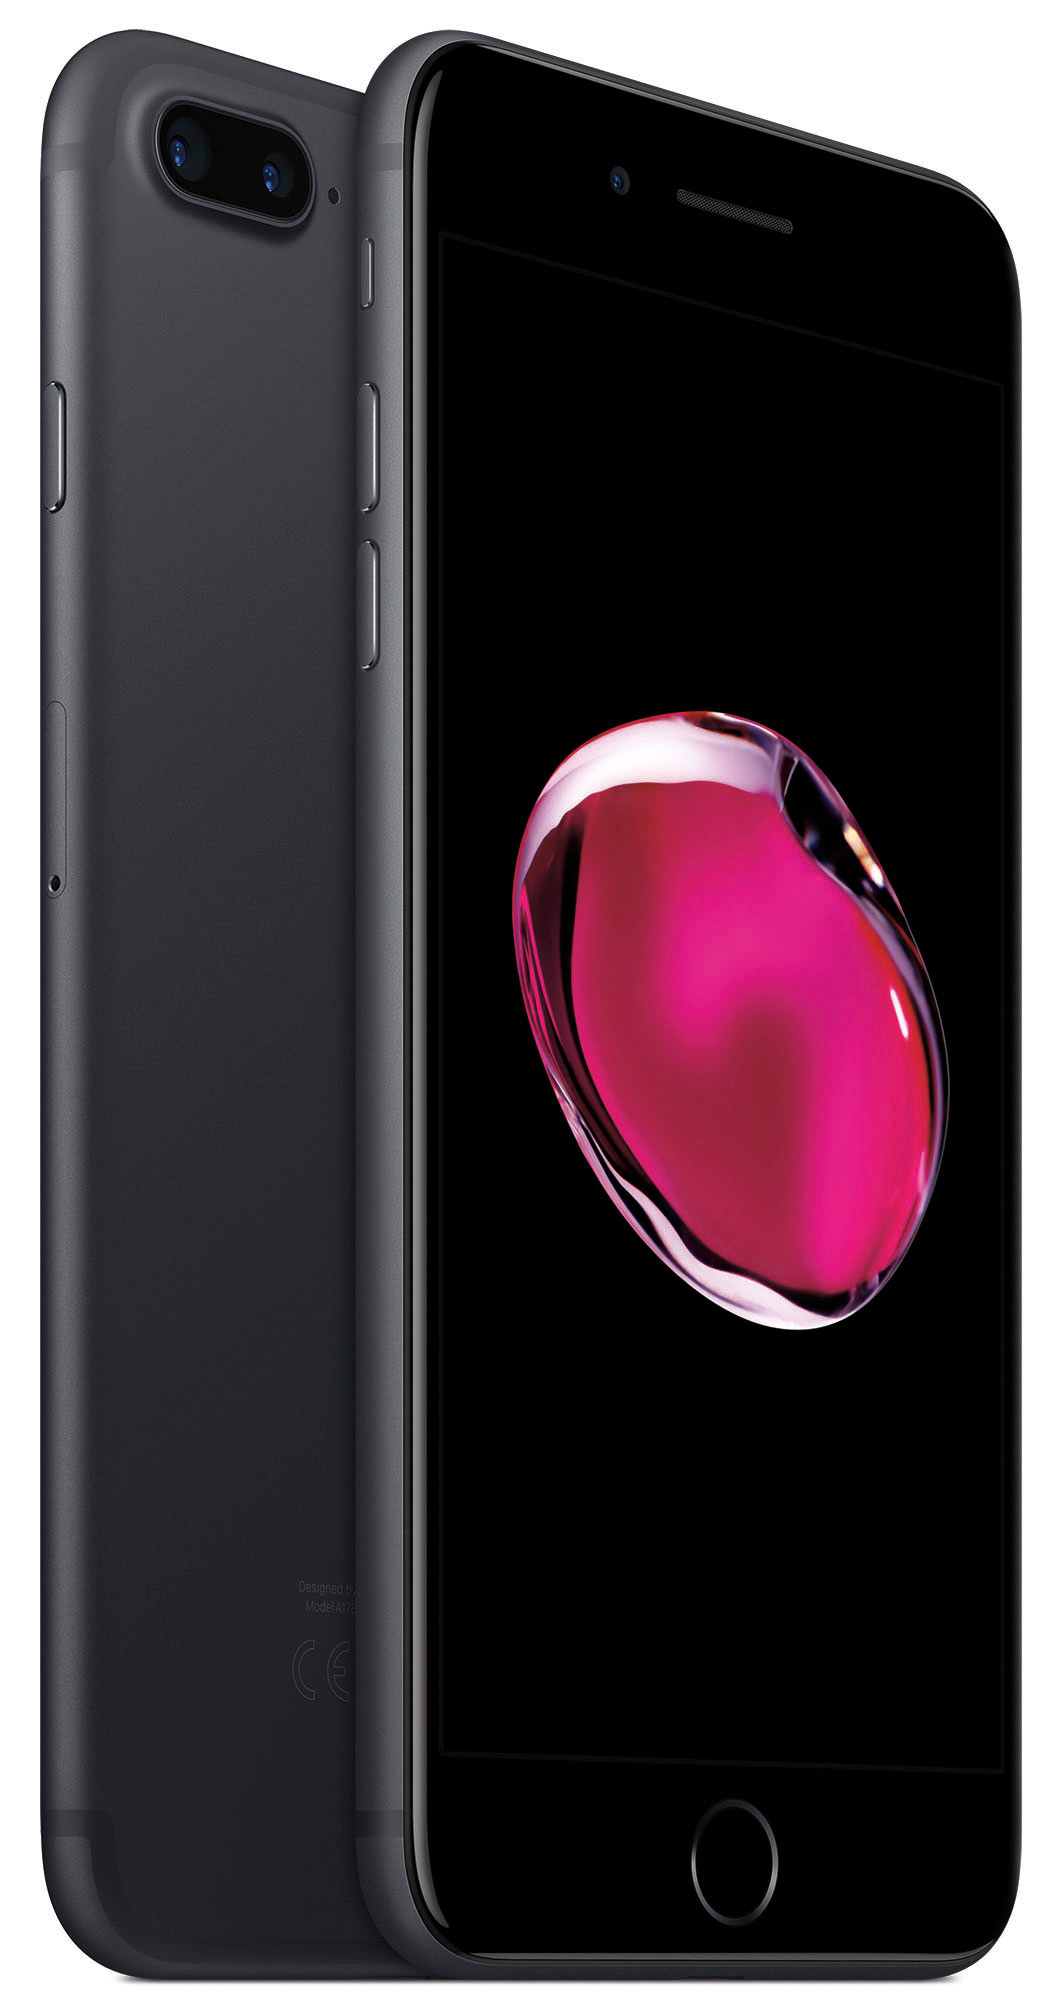 Смартфон Apple iPhone 7 Plus 32GB (черный)